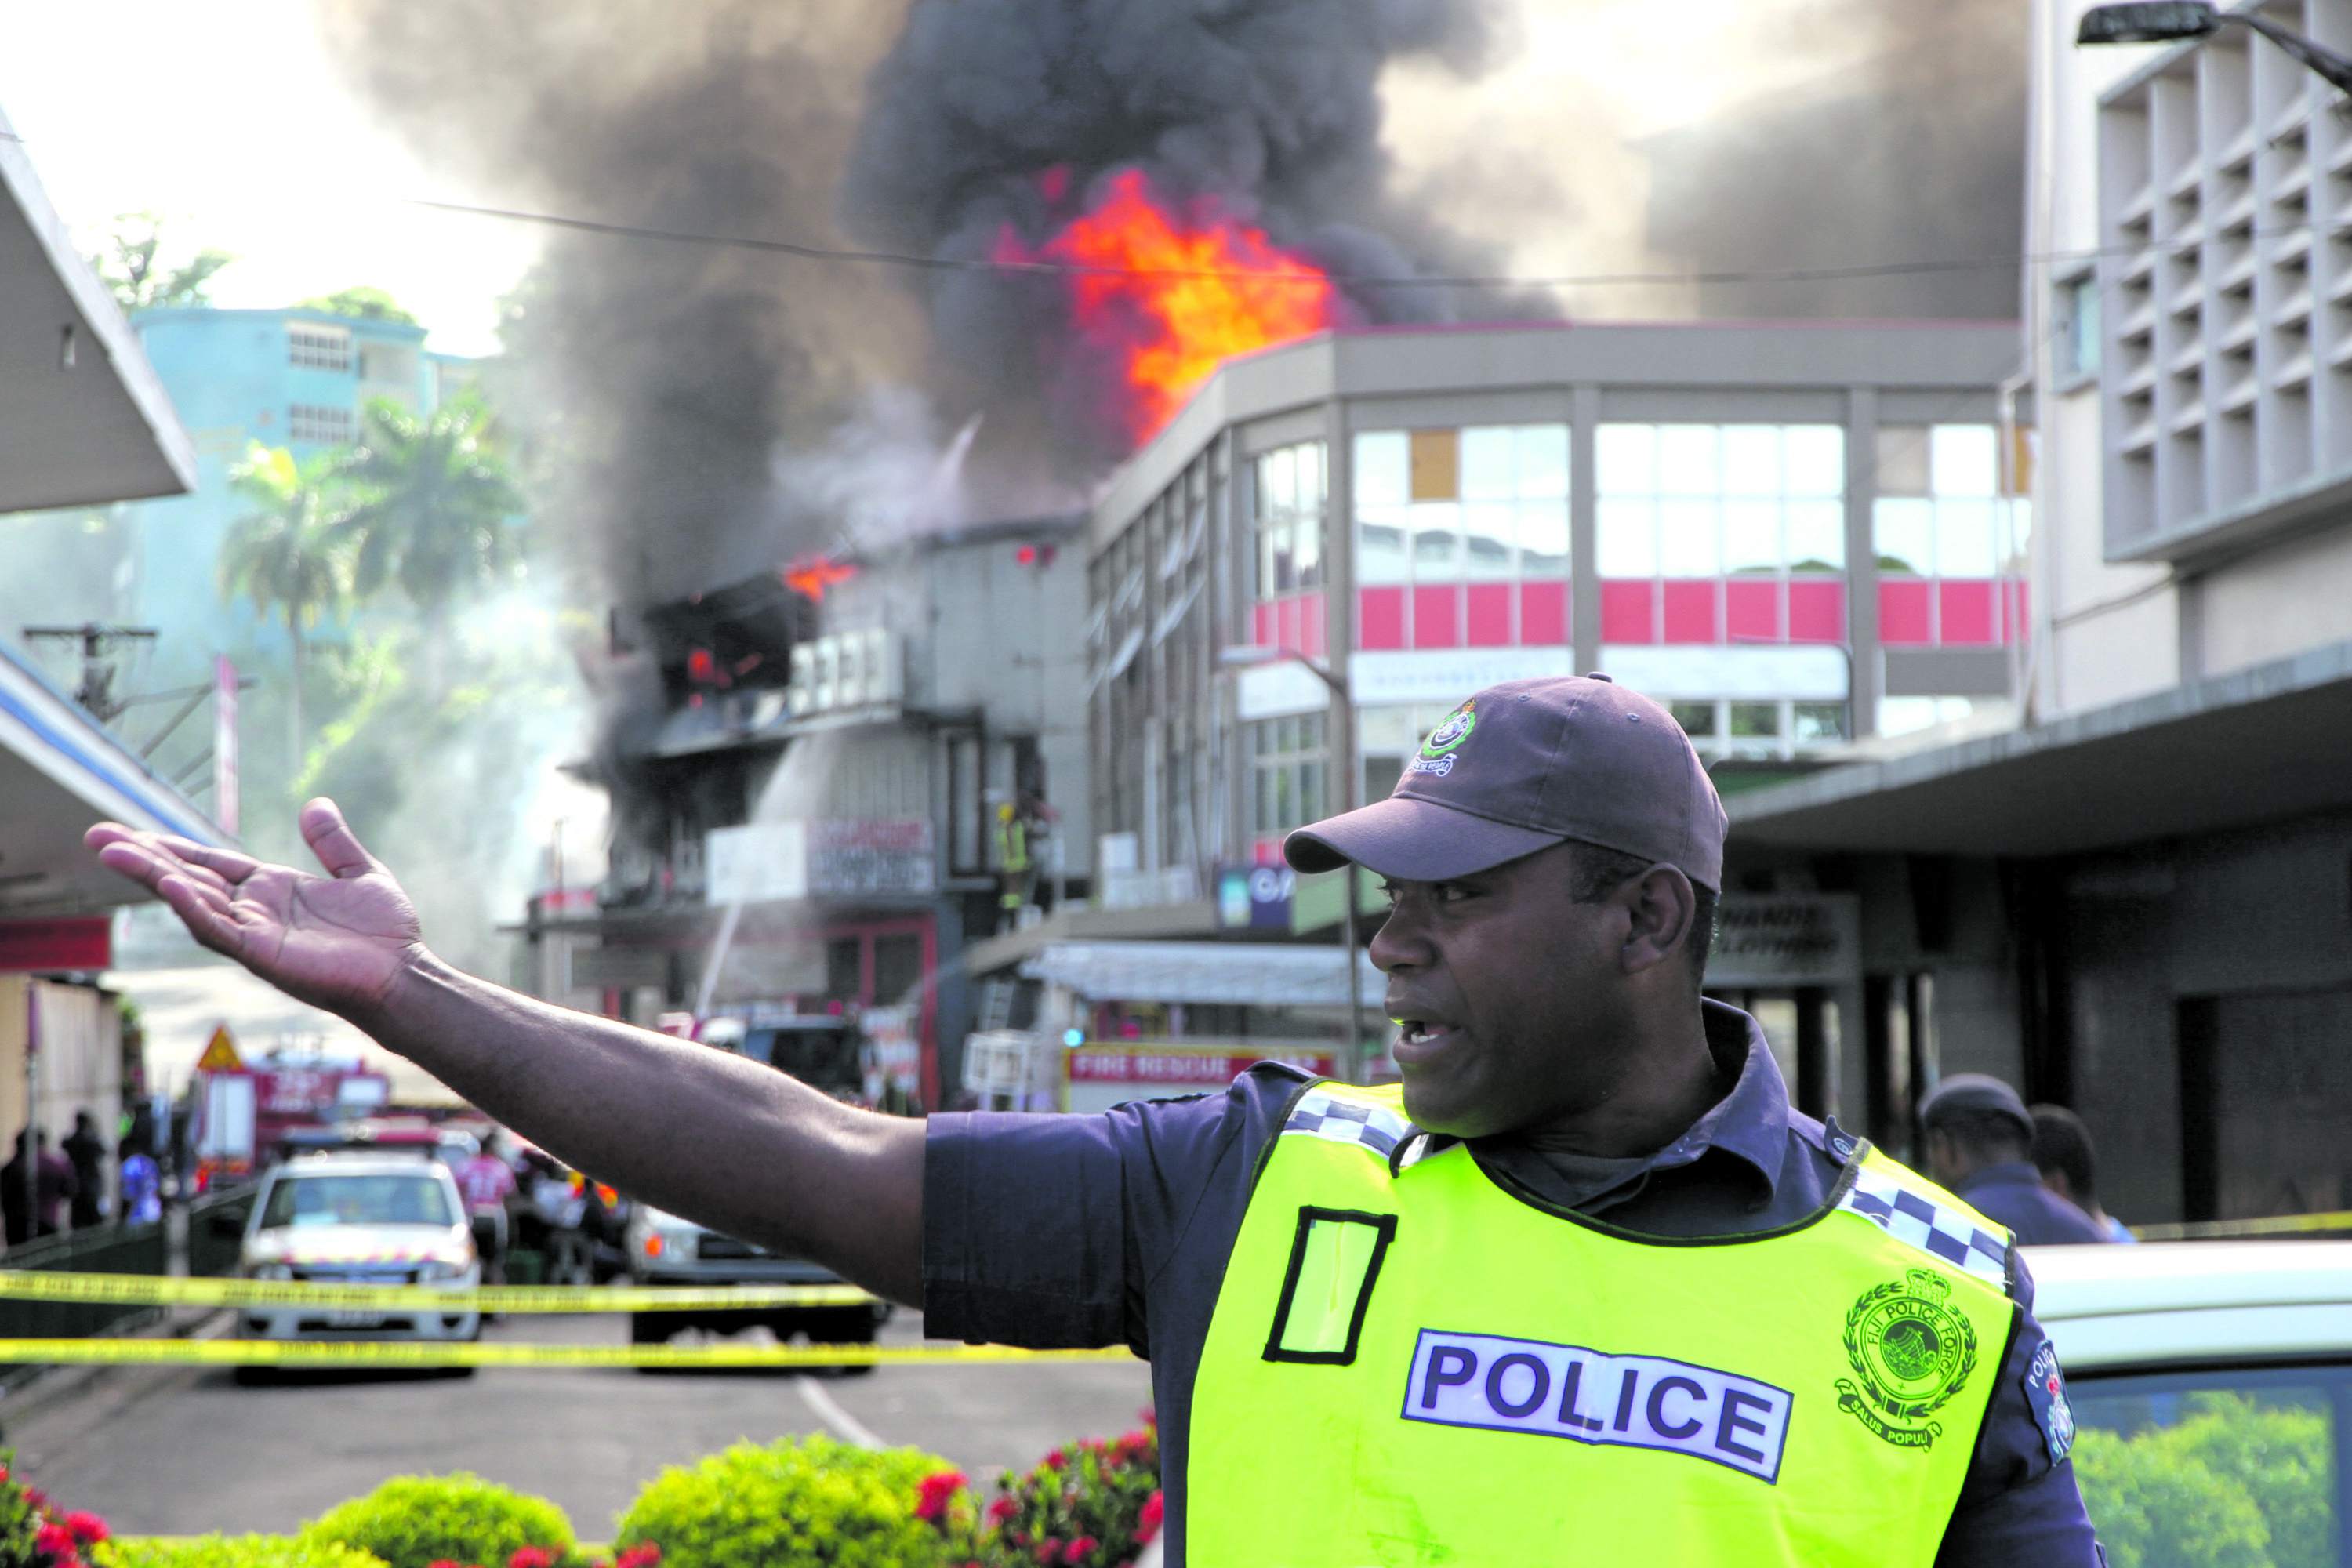 A Police officer on crowd control while firefighters battle the blaze at the J. Santa Ram Supermarket bulk store and Lotus Garment building at Robertson Road in Suva on December 9, 2017.